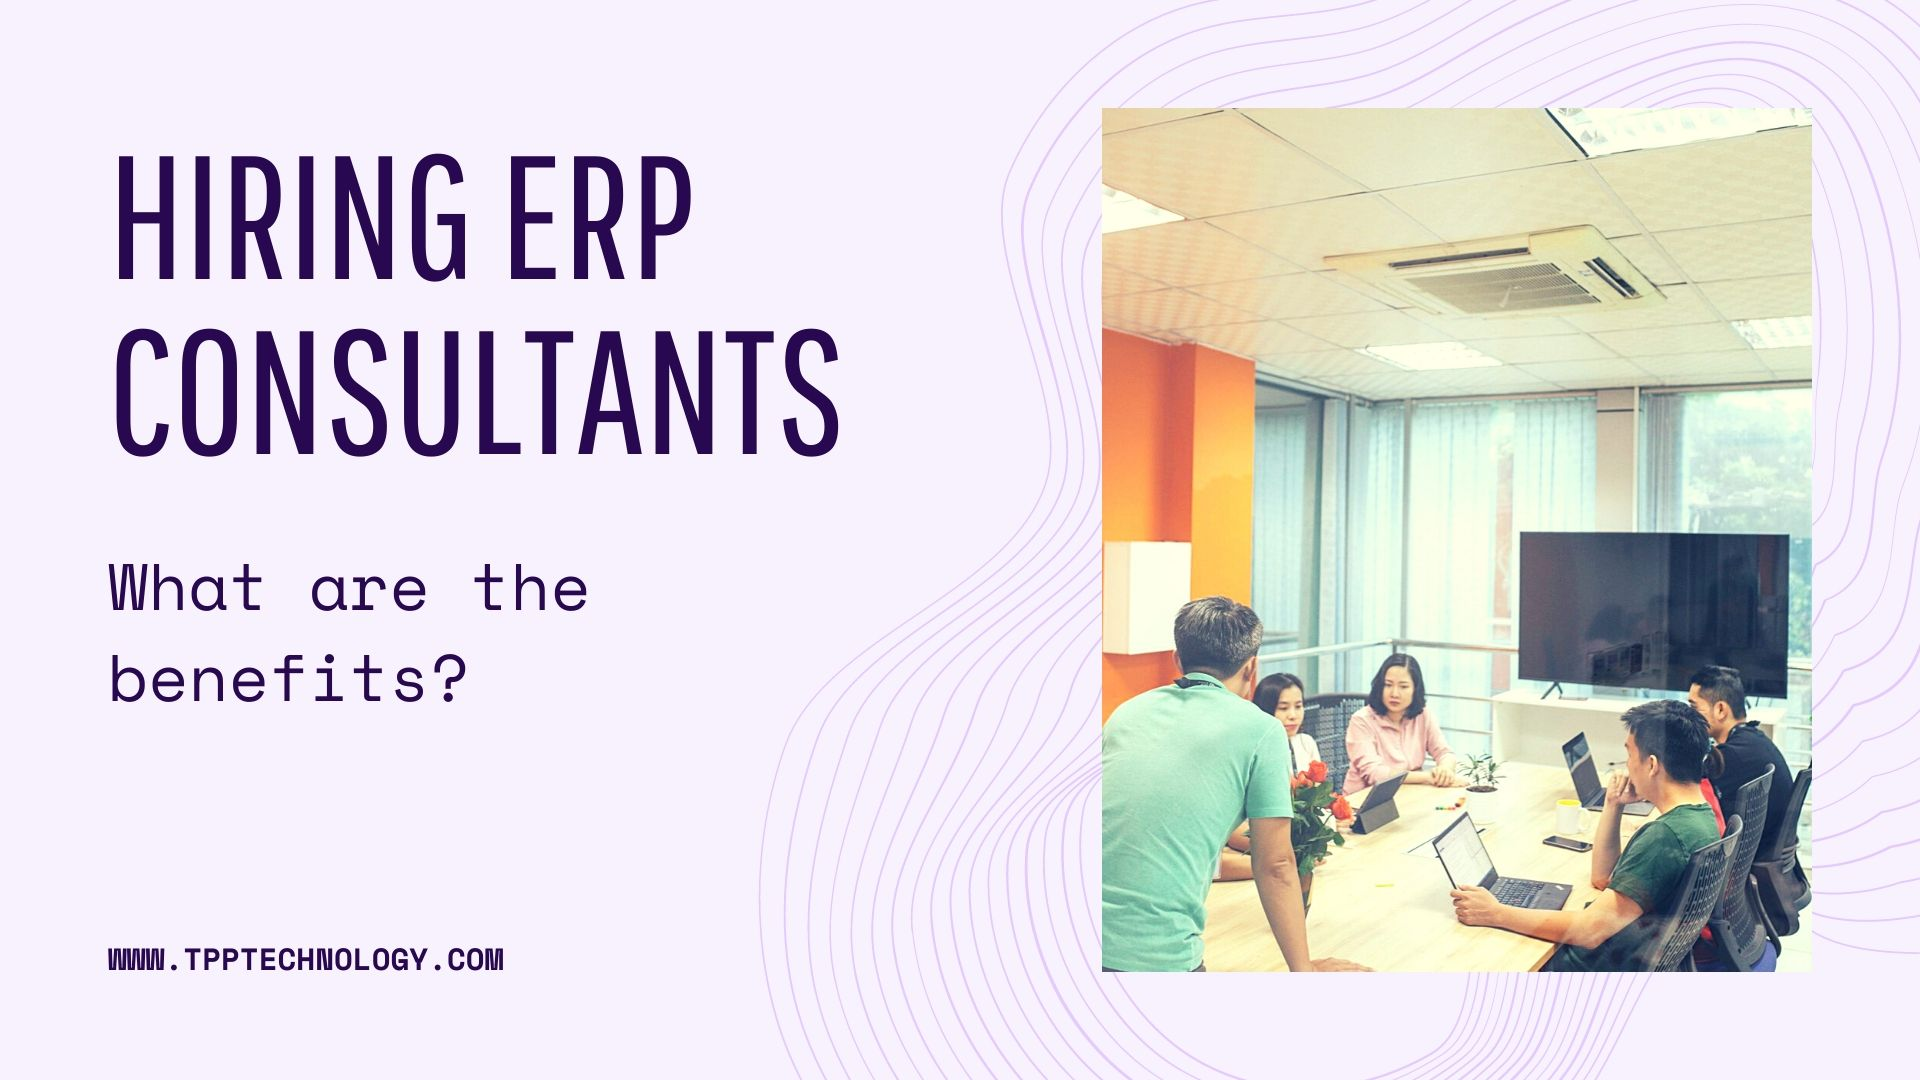 Hiring ERP Consultants: What are the benefits?